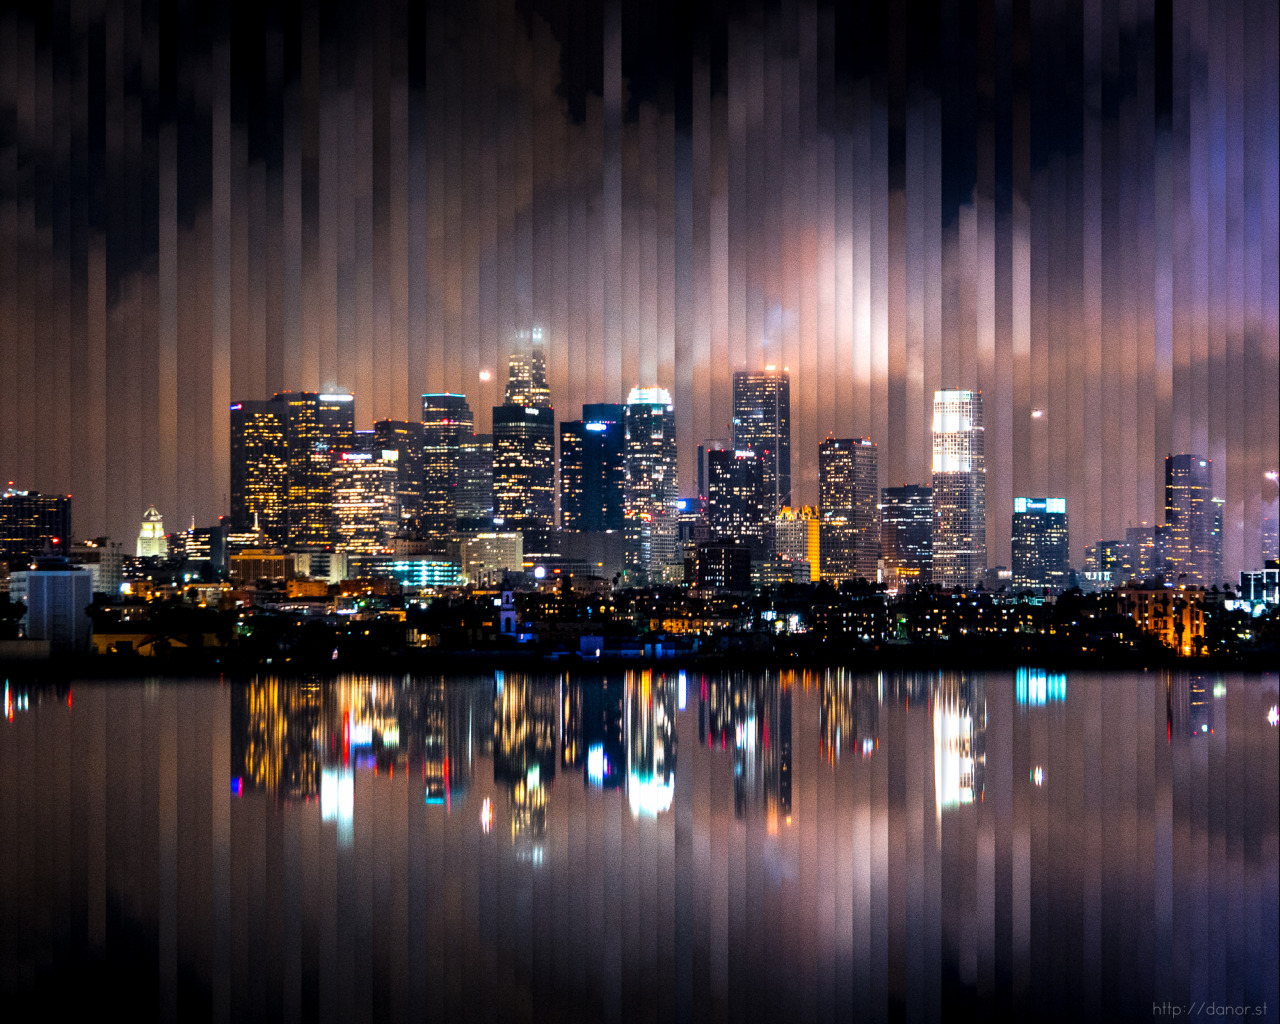 Los Angeles Through the Lens of Photographer Dan Marker-Moore